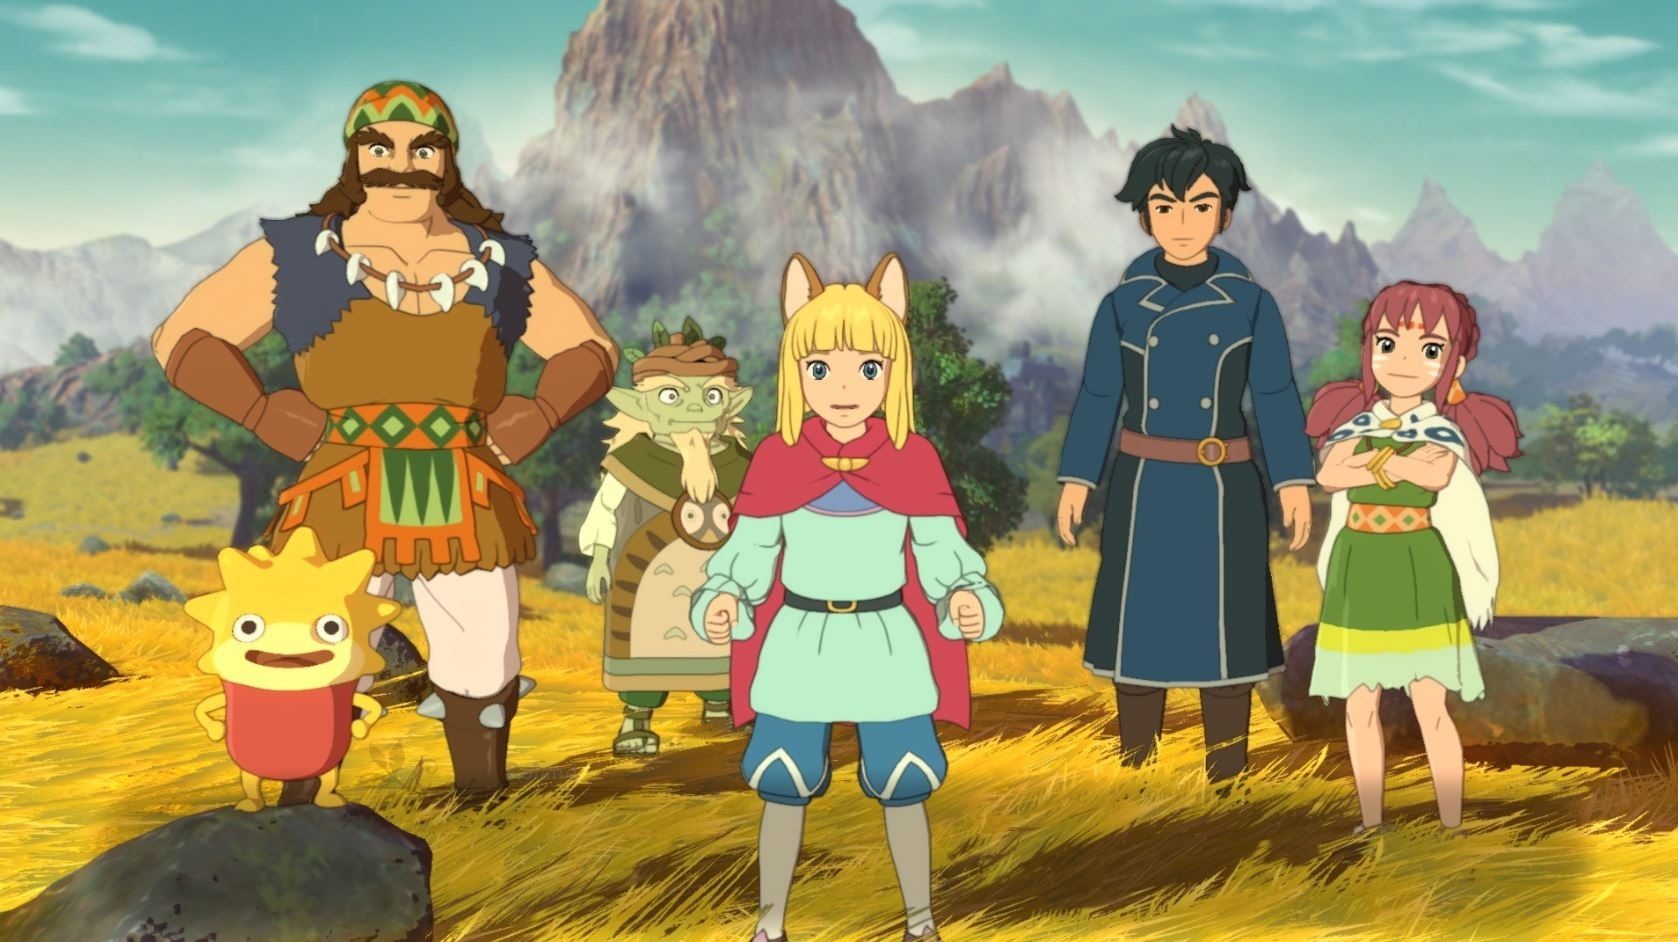 Скриншот из игры Ni no Kuni II: Revenant Kingdom под номером 16